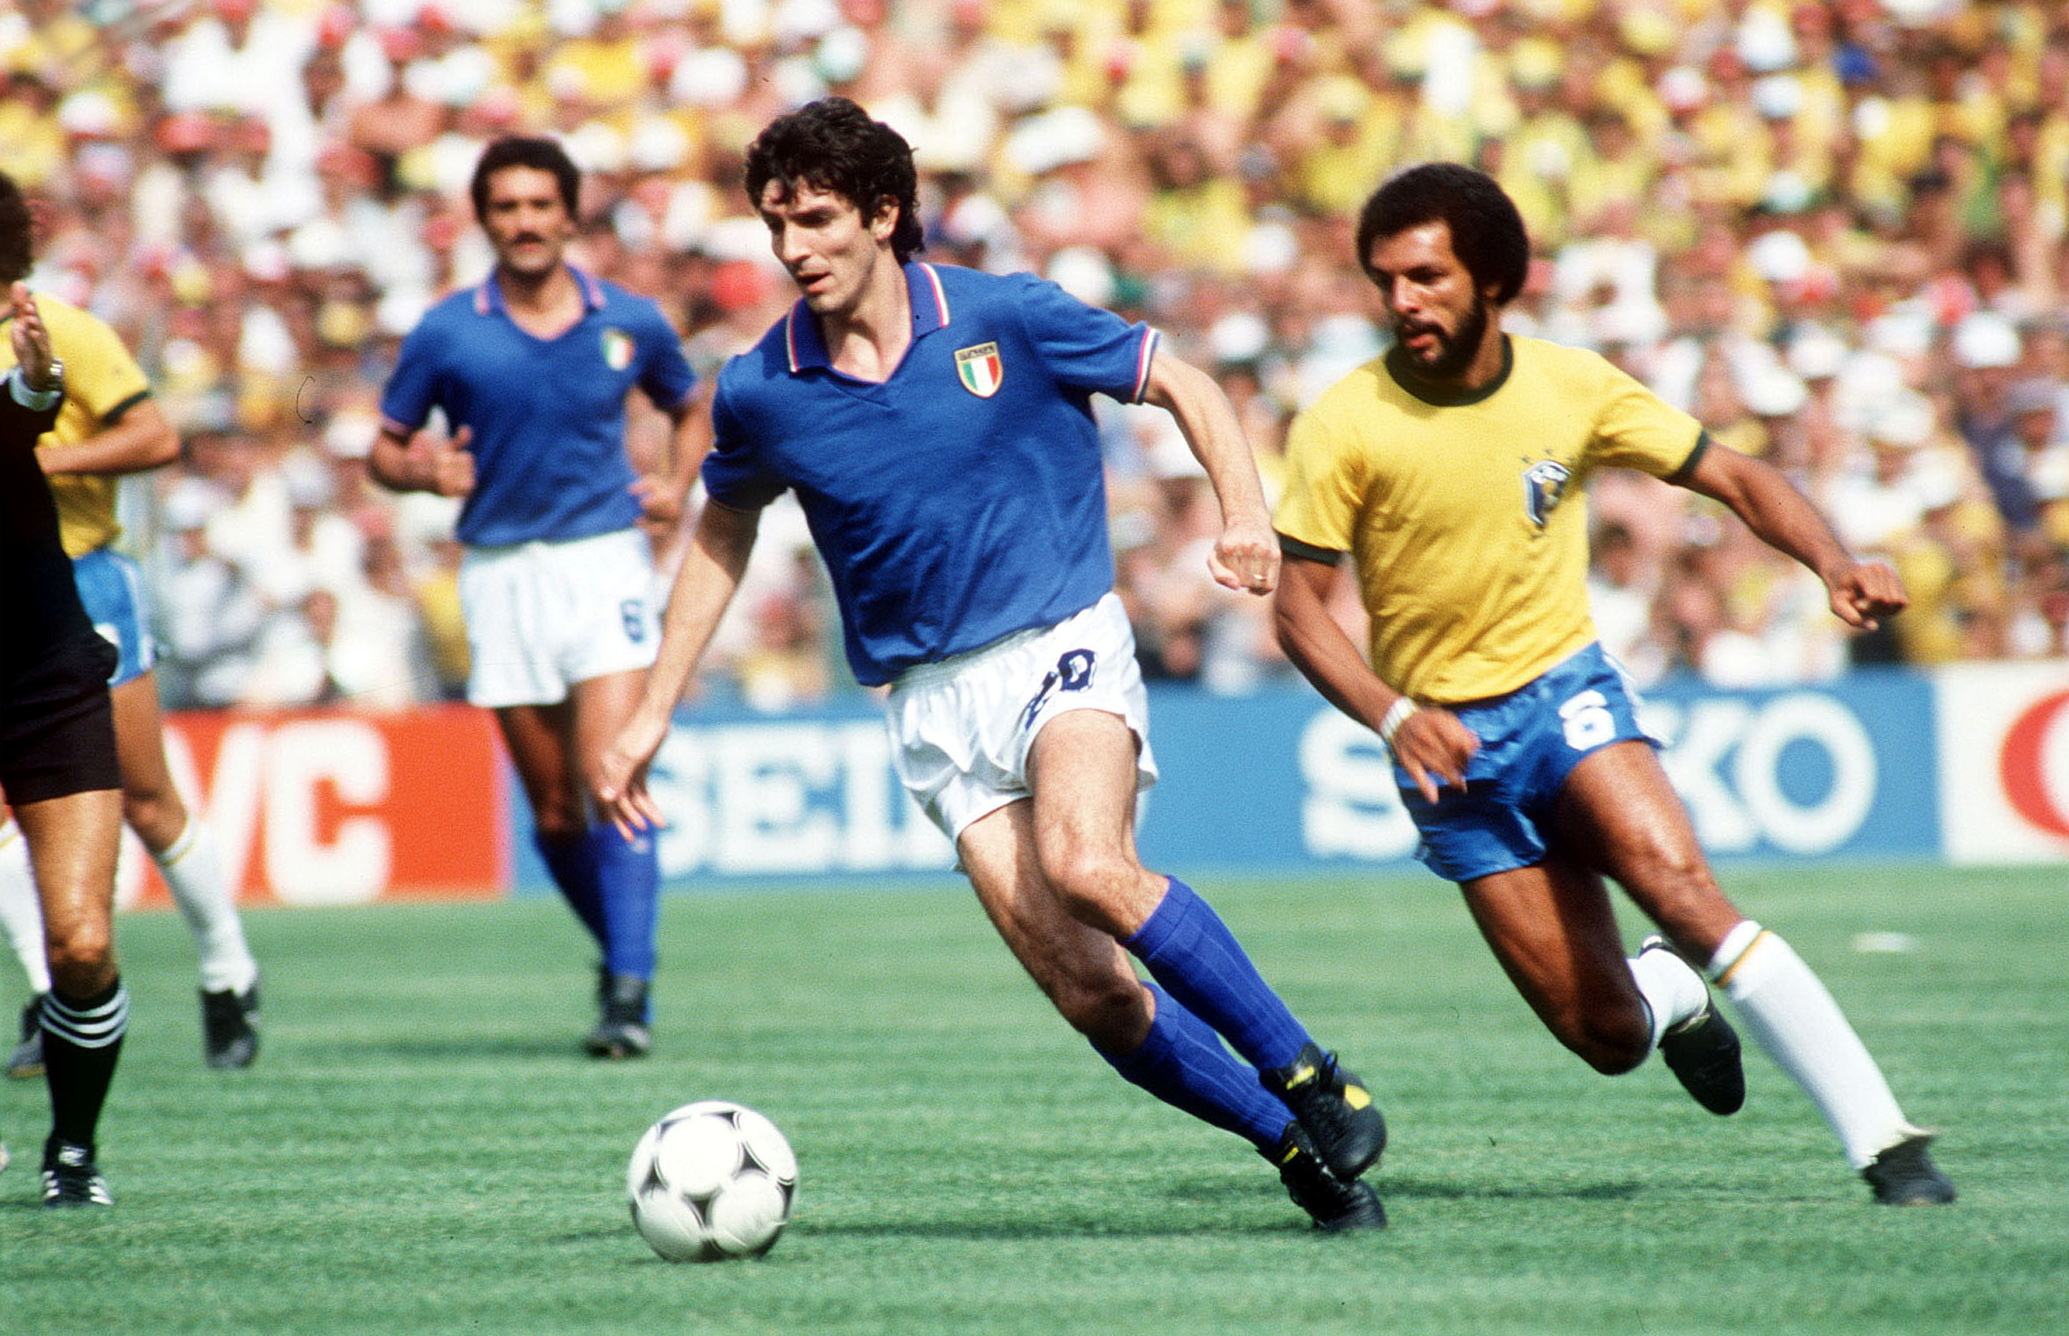 Italy's Paolo Rossi gets away from Brazil's Junior. Mandatory Credit: Action Images/File Photo